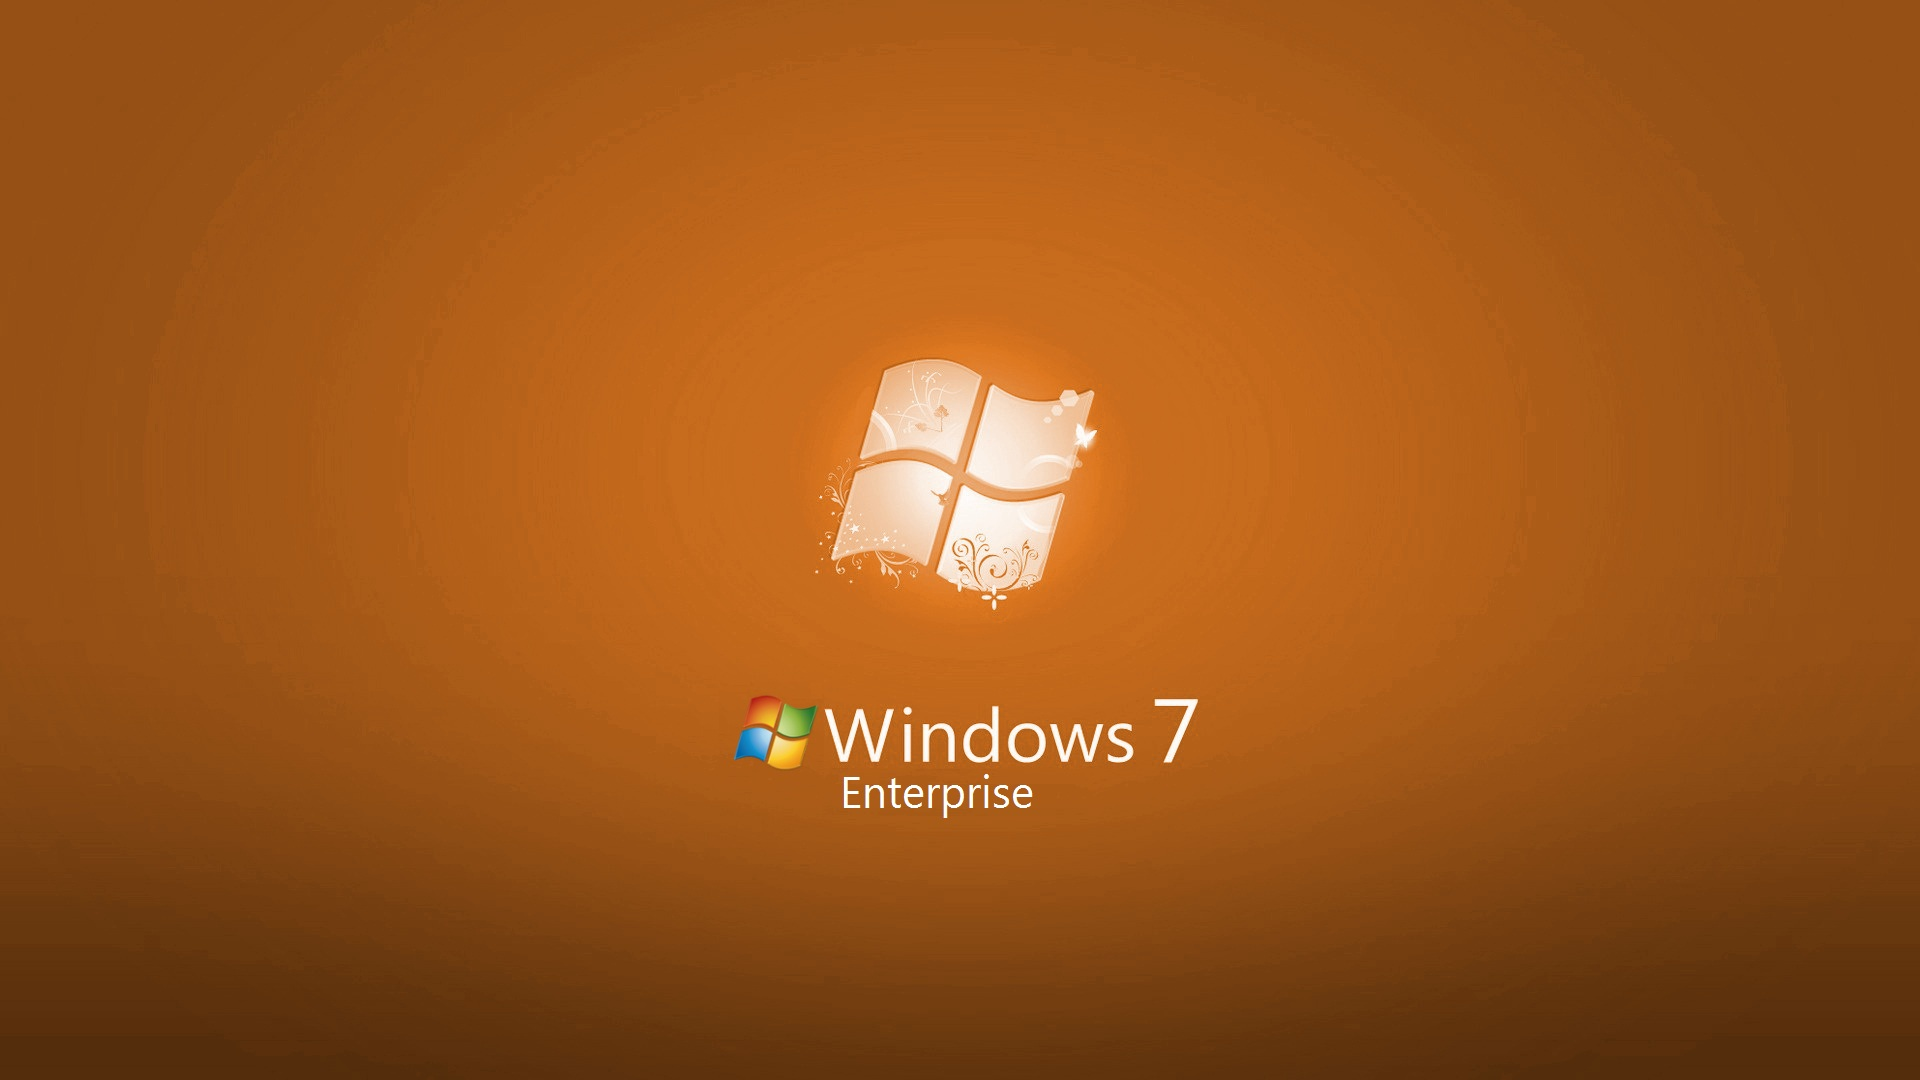 Windows 7 Enterprise Wallpaper 1920x1080 by JWC59382 1920x1080